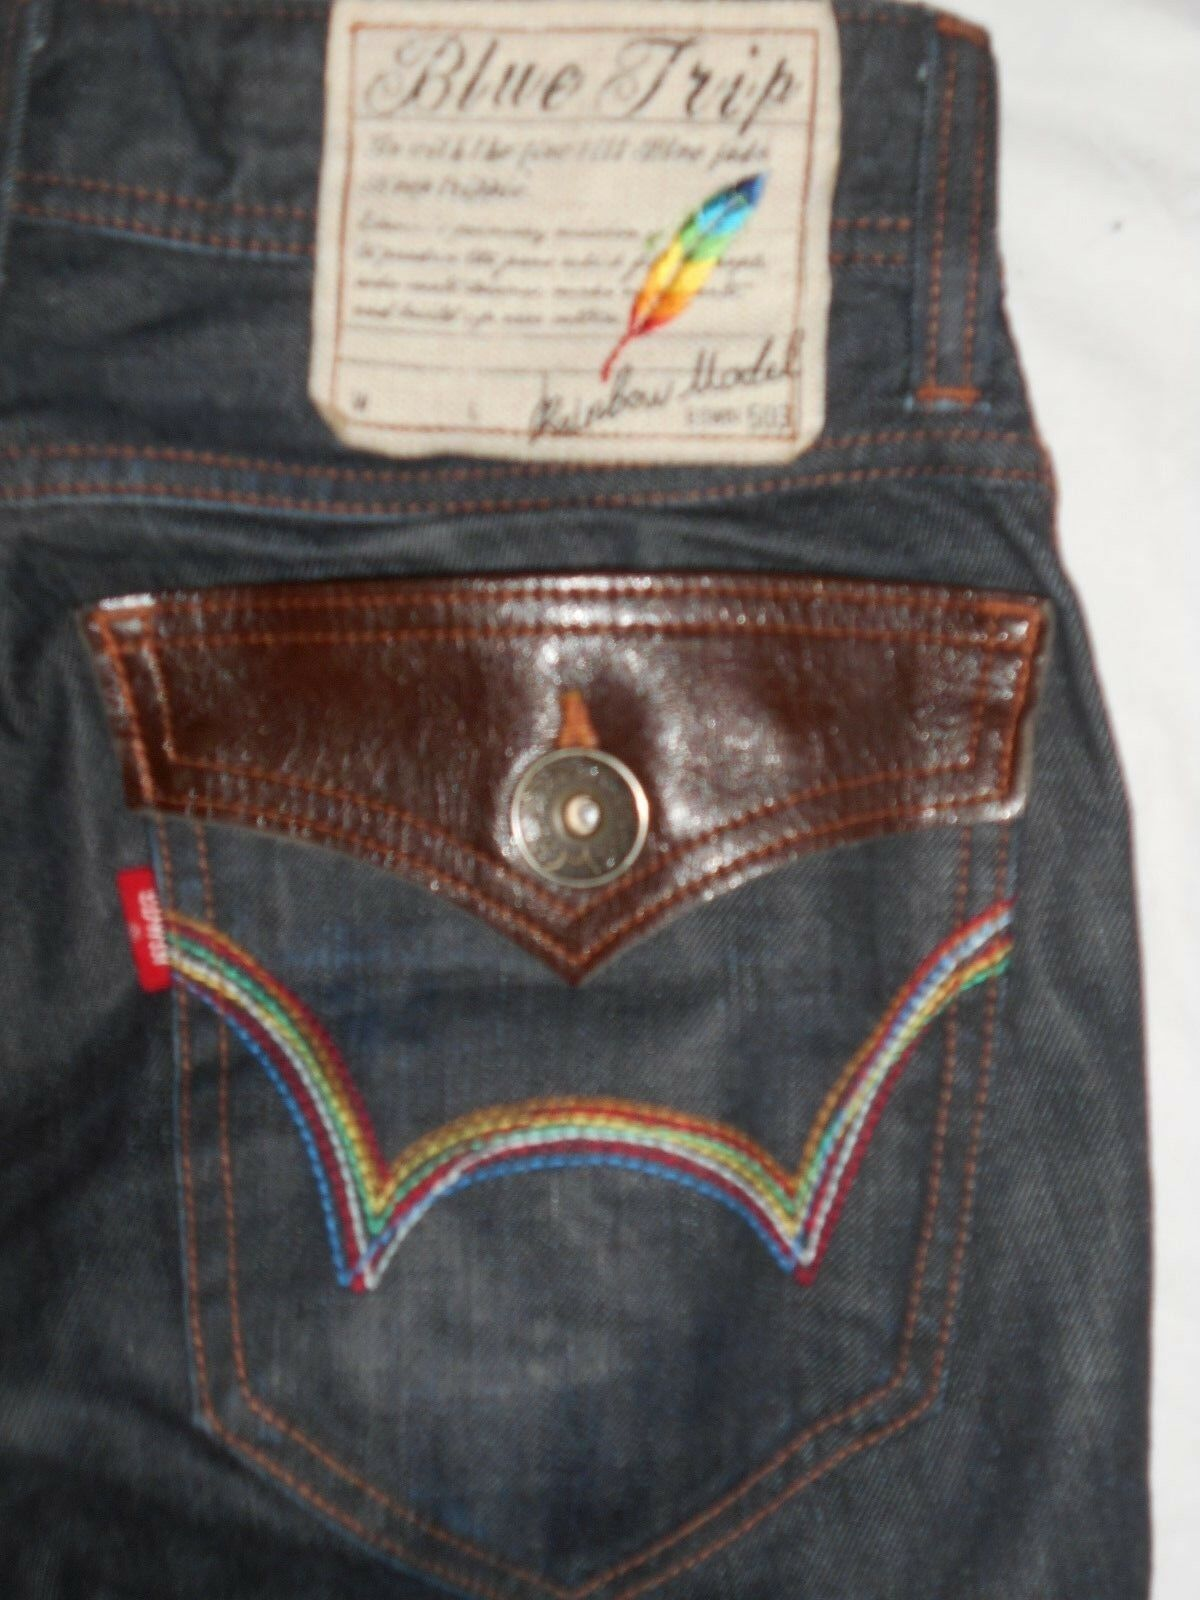 EDWIN 503 Men bluee Tuip Rainbow Model Zip Fly Jeans Size 29Waist-34Inside Leg